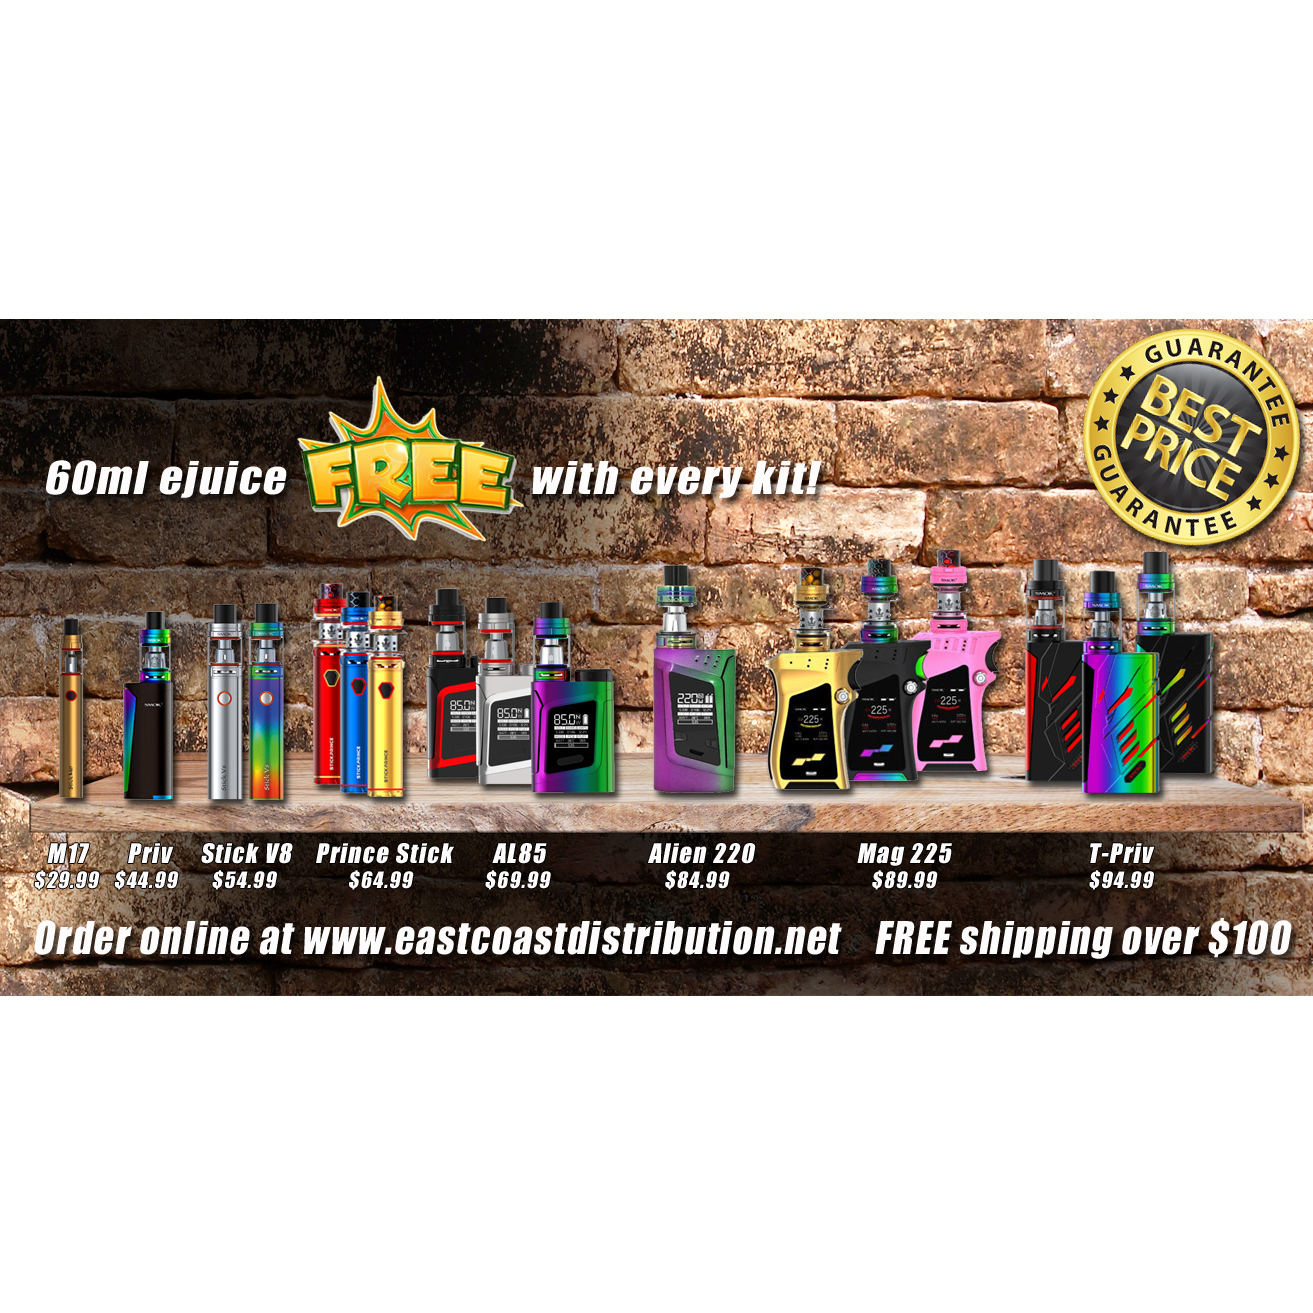 East Coast Distribution - VapeCity in St John's: Choose from a large variety of Vape kits from Smok. All kits come with a FREE 60ml eJuice your choice of brand and flavor.